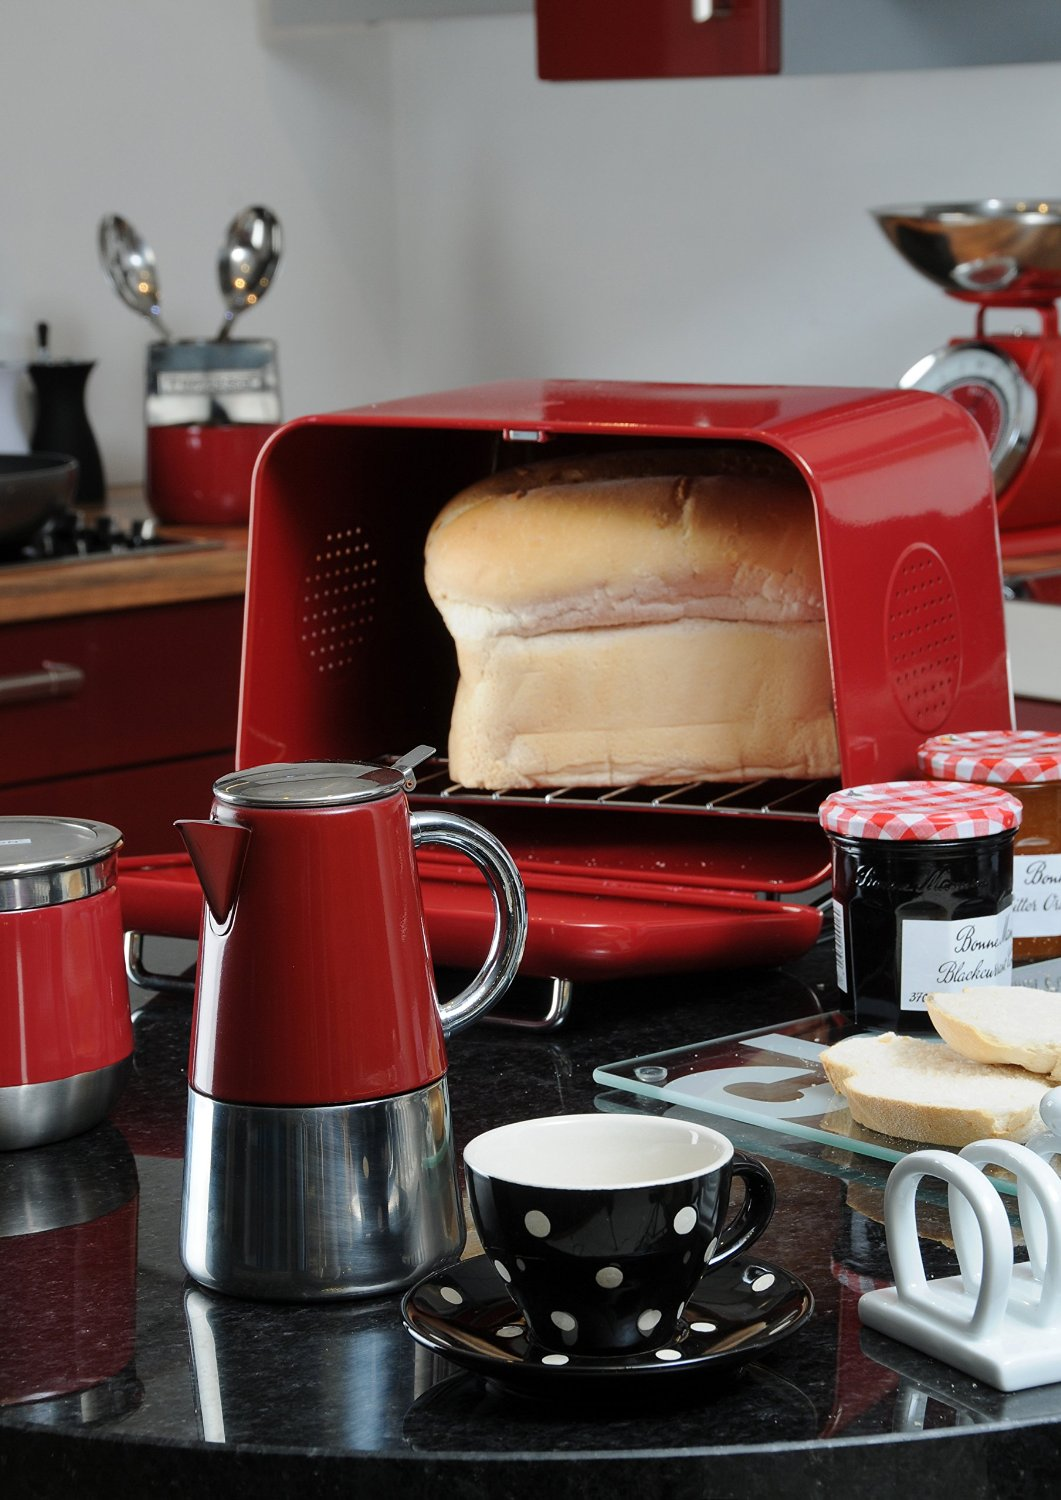 This bread box is a 1950s retro-style bread box. It comes with a pull-open door, making it easier to load a loaf of bread into it.